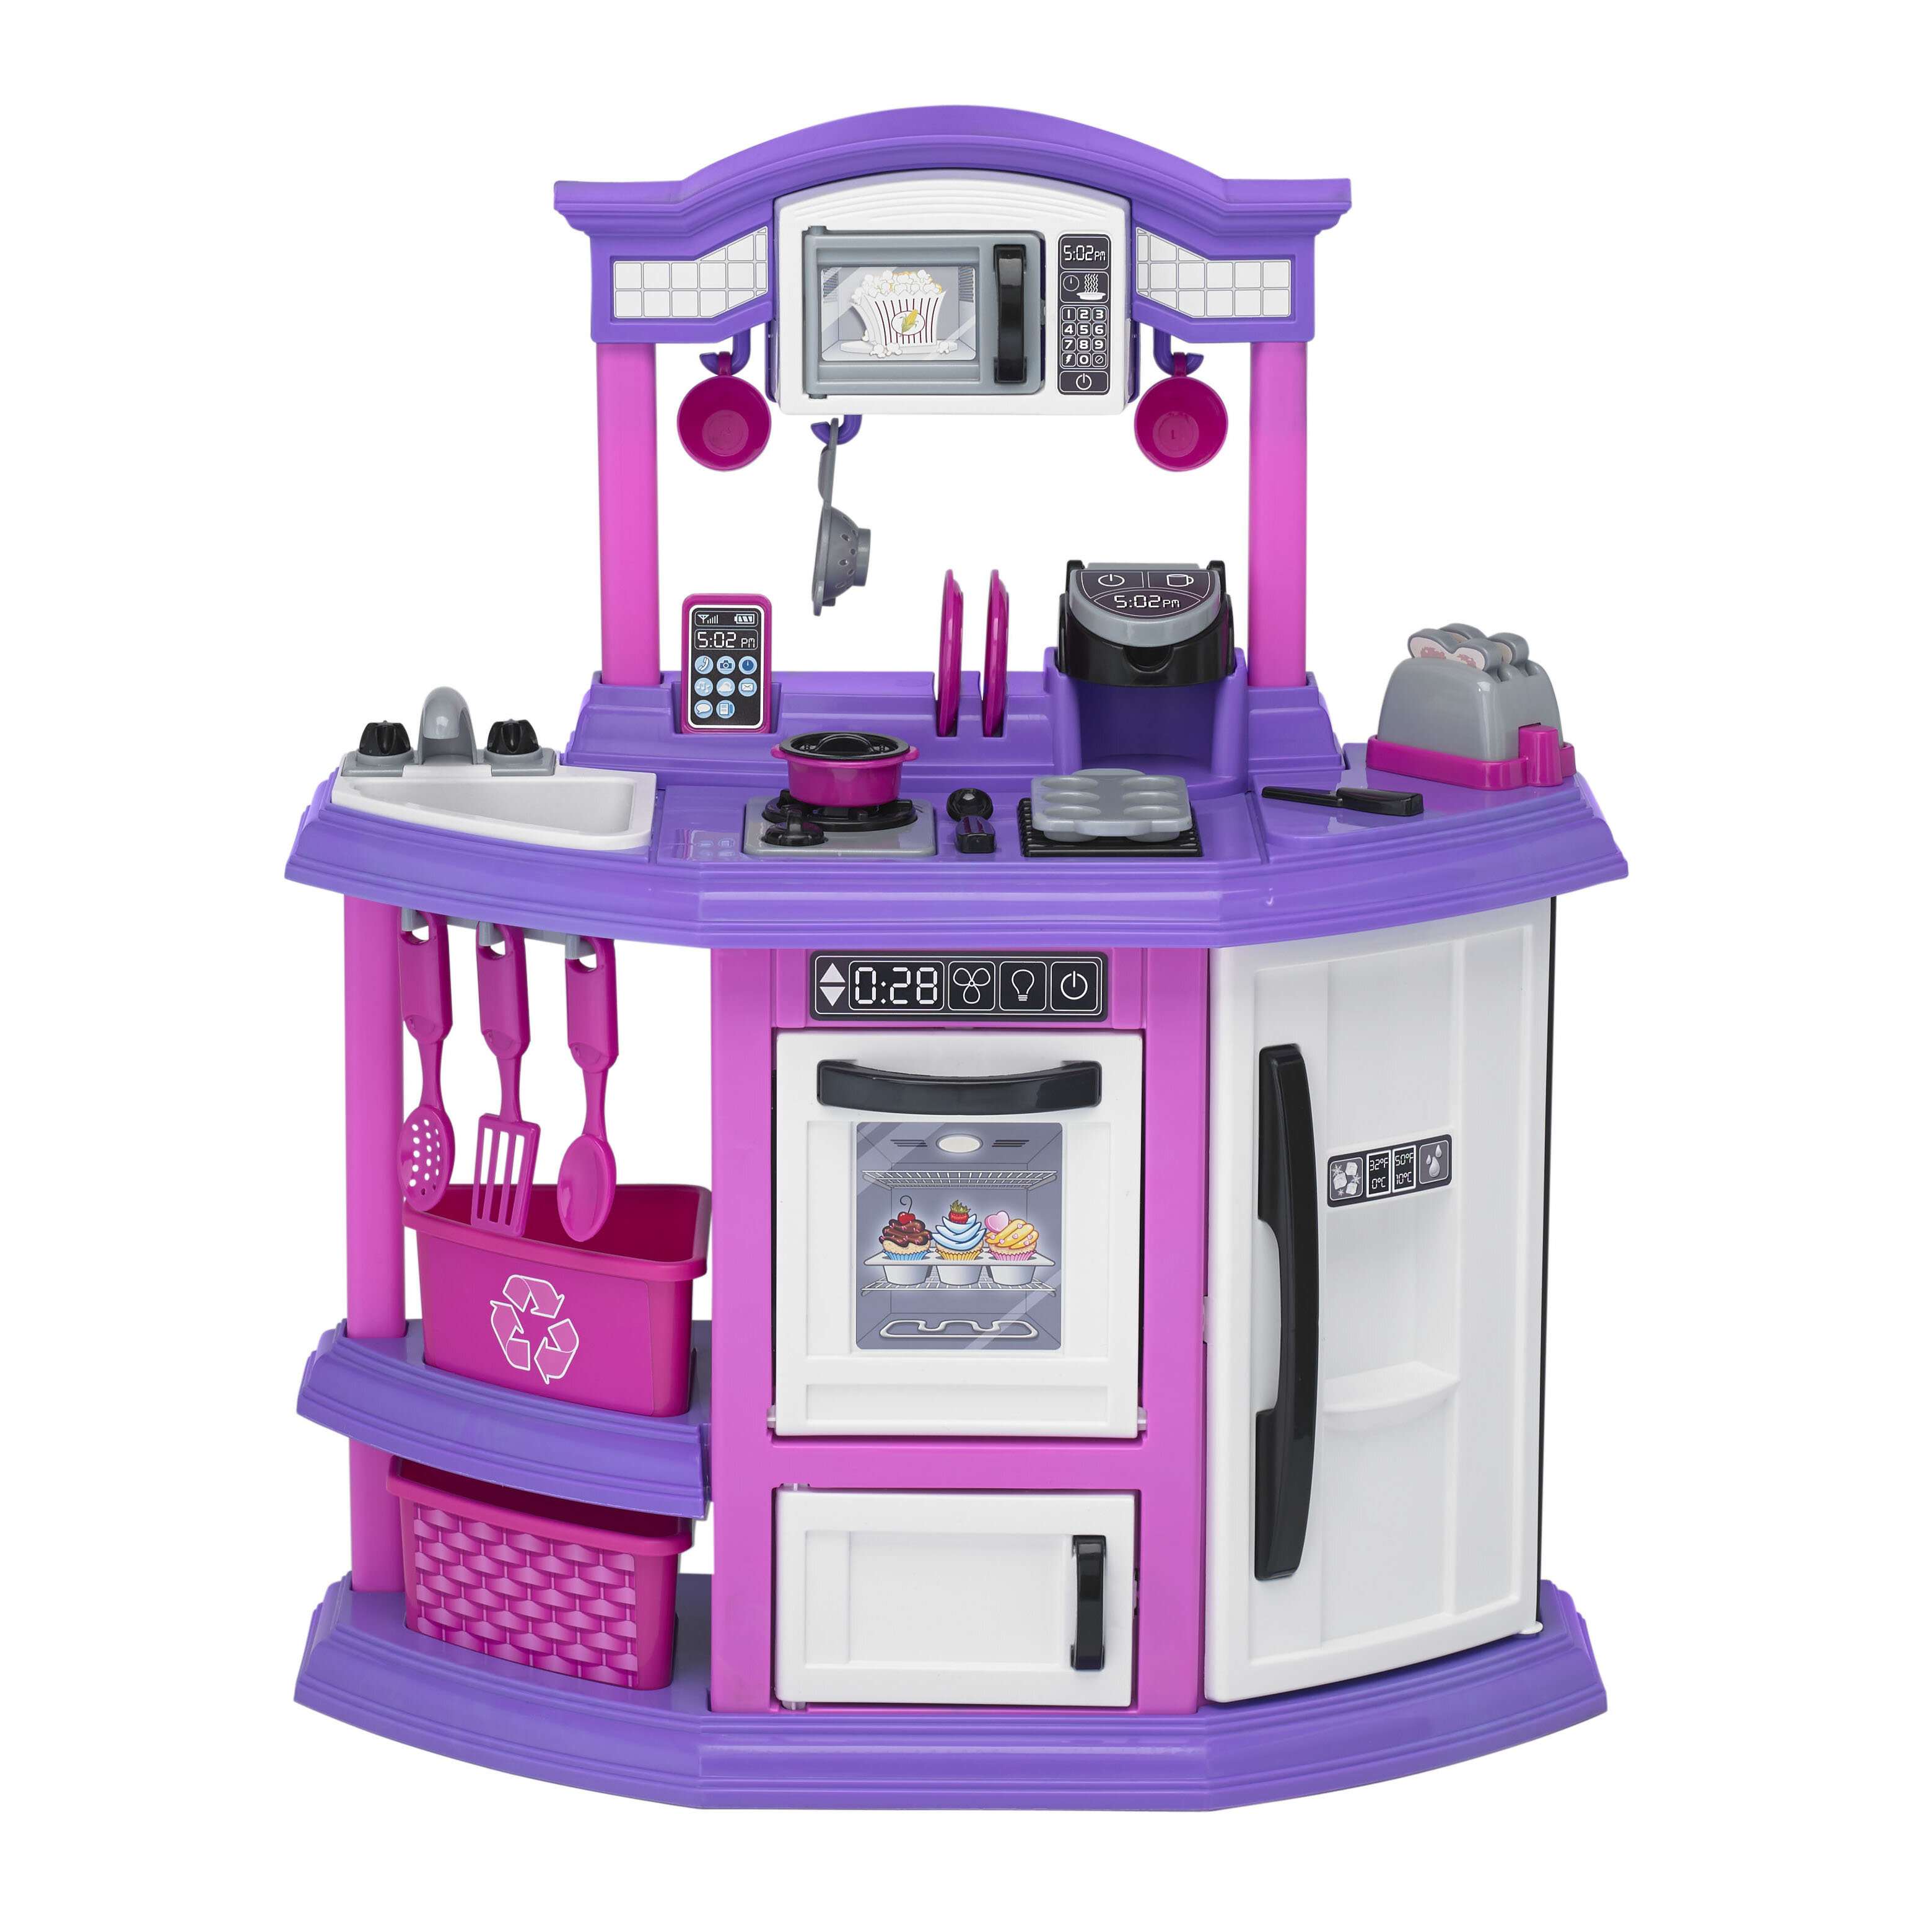 Dolls Kitchen Furniture Accessories For Doll Dining Table Chairs Dinnerware Cabinet Furnitures Doll Pink Reliable Performance Dolls & Stuffed Toys Dolls Accessories